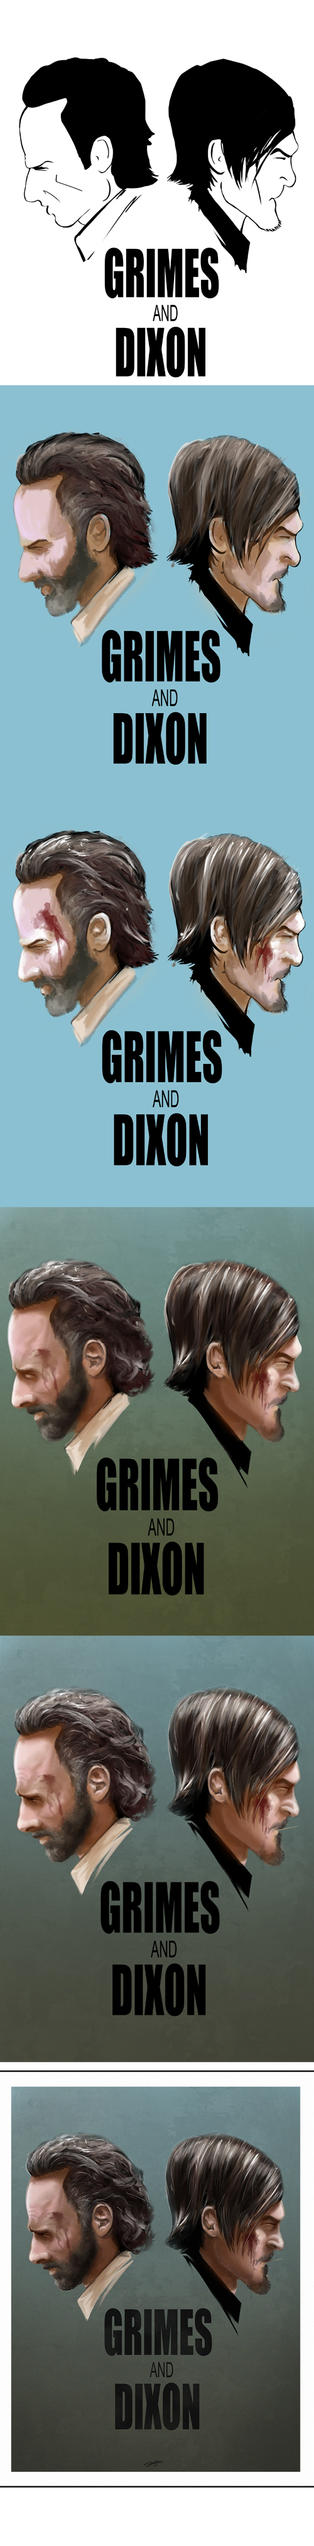 Grimes And Dixon - colour version WIP by AndyFairhurst